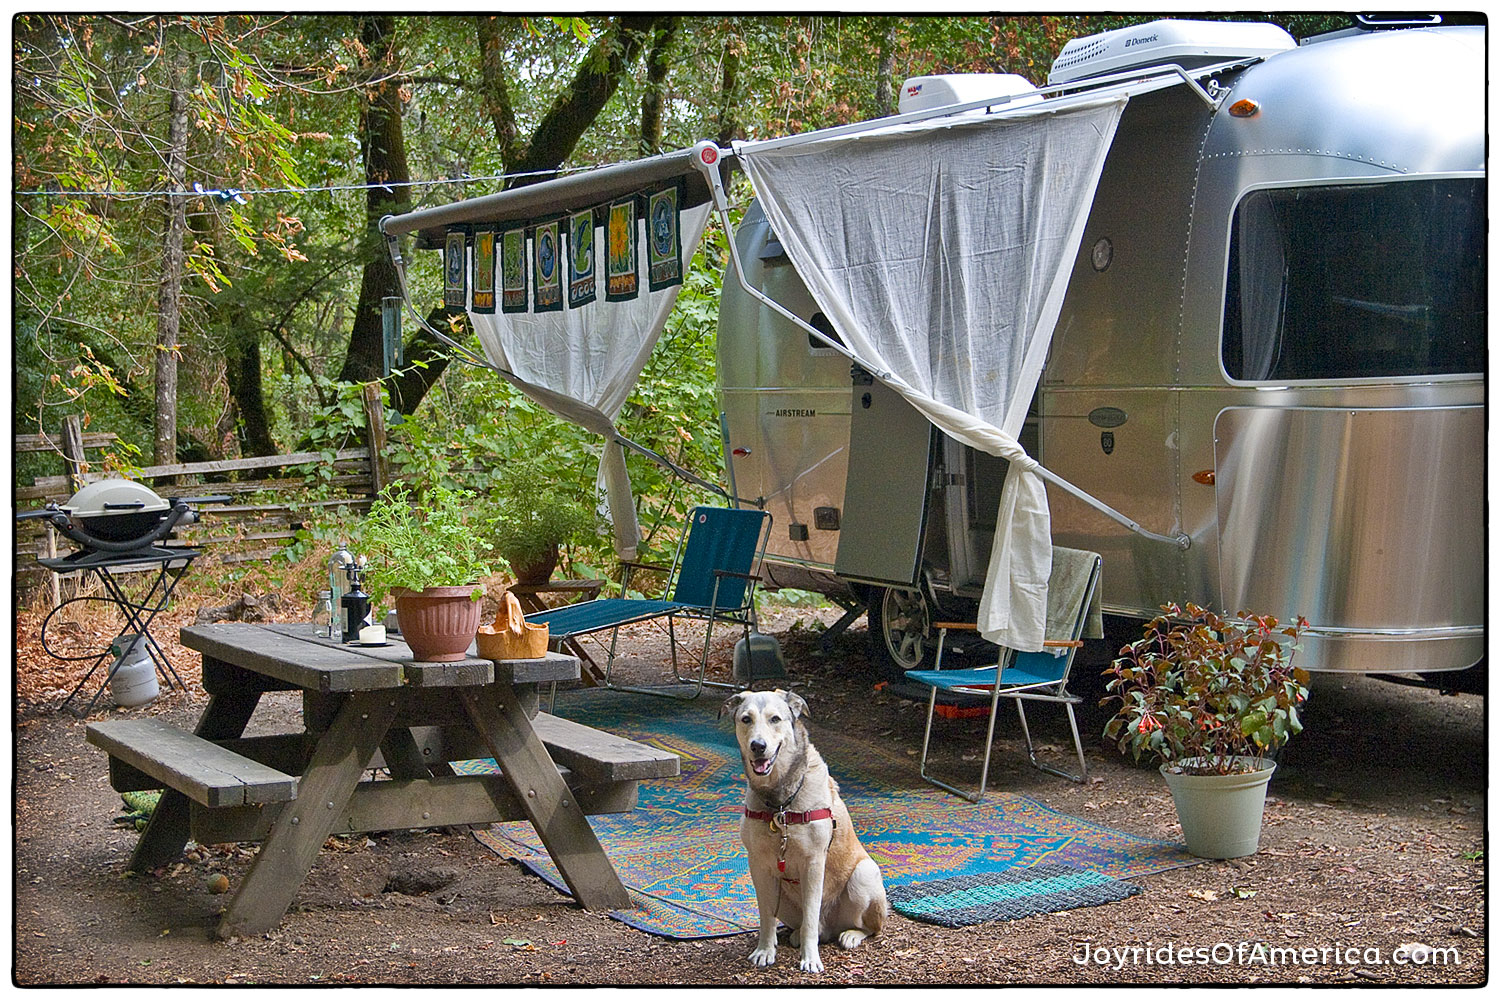 Wine country hideaway at Bothe Napa Valley State Park - volunteer site.